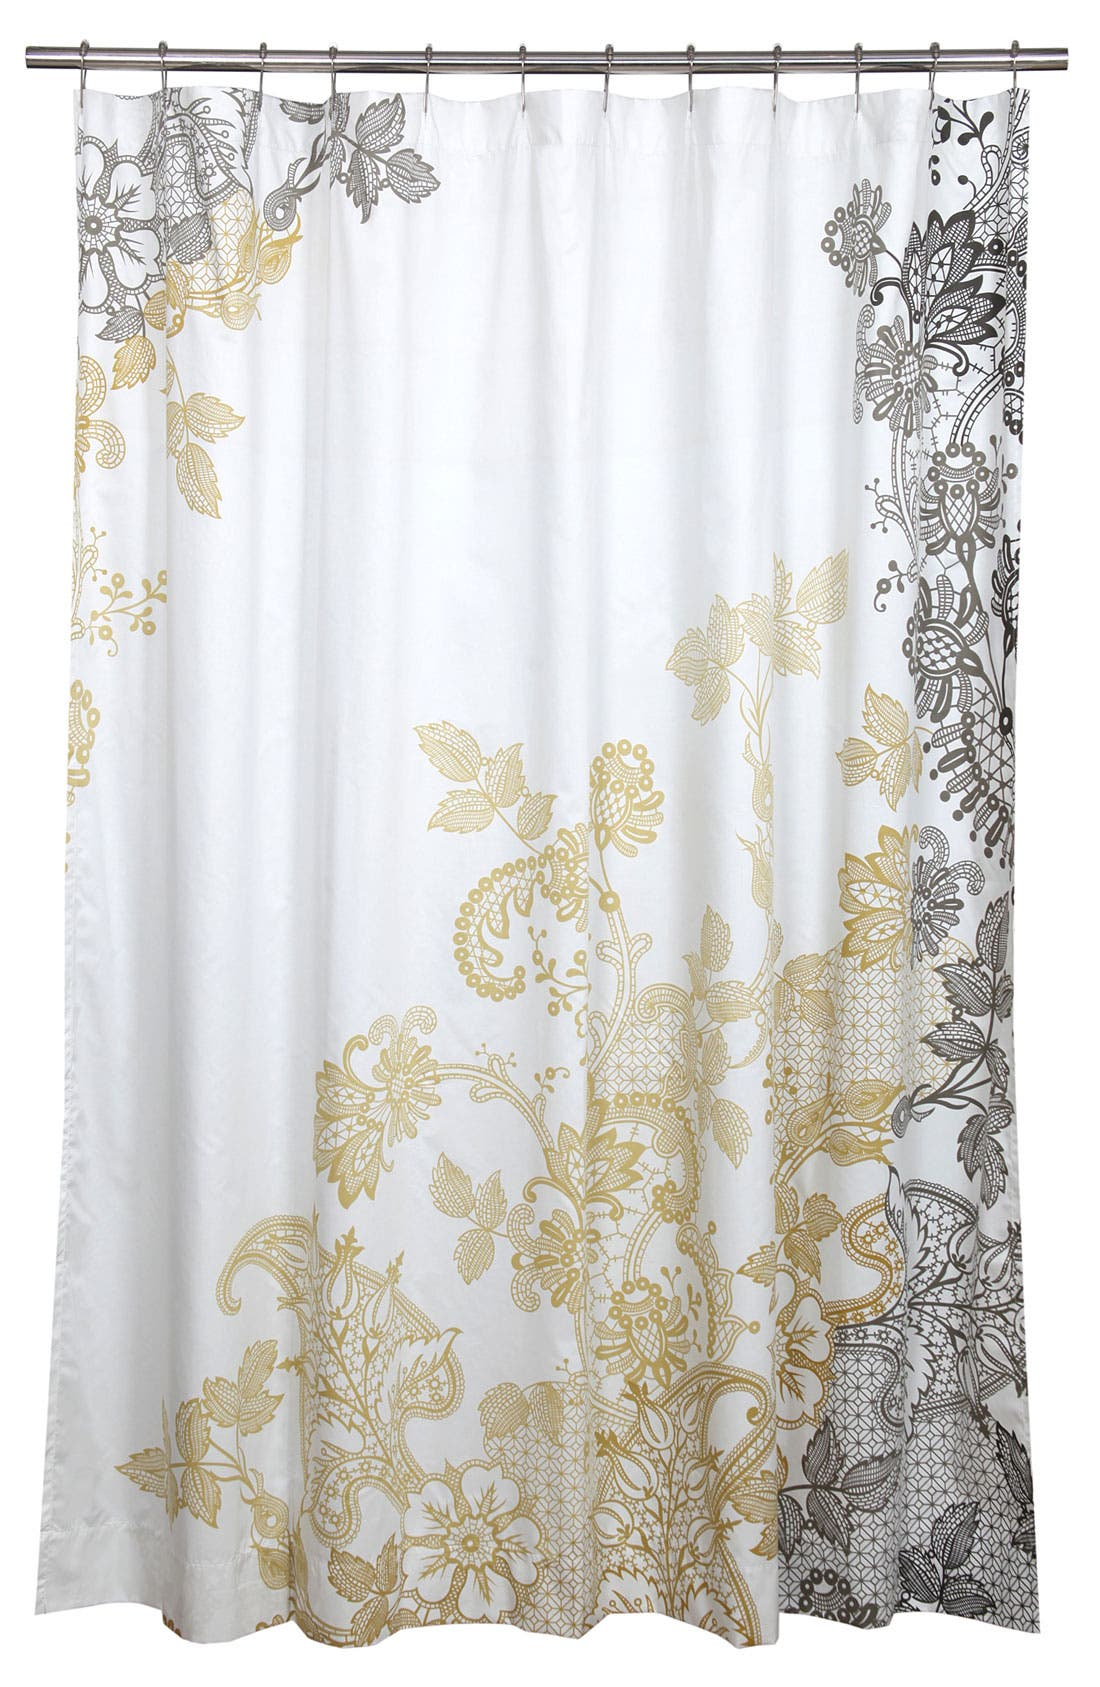 Main Image - Blissliving Home 'Evita' Shower Curtain (Online Only)